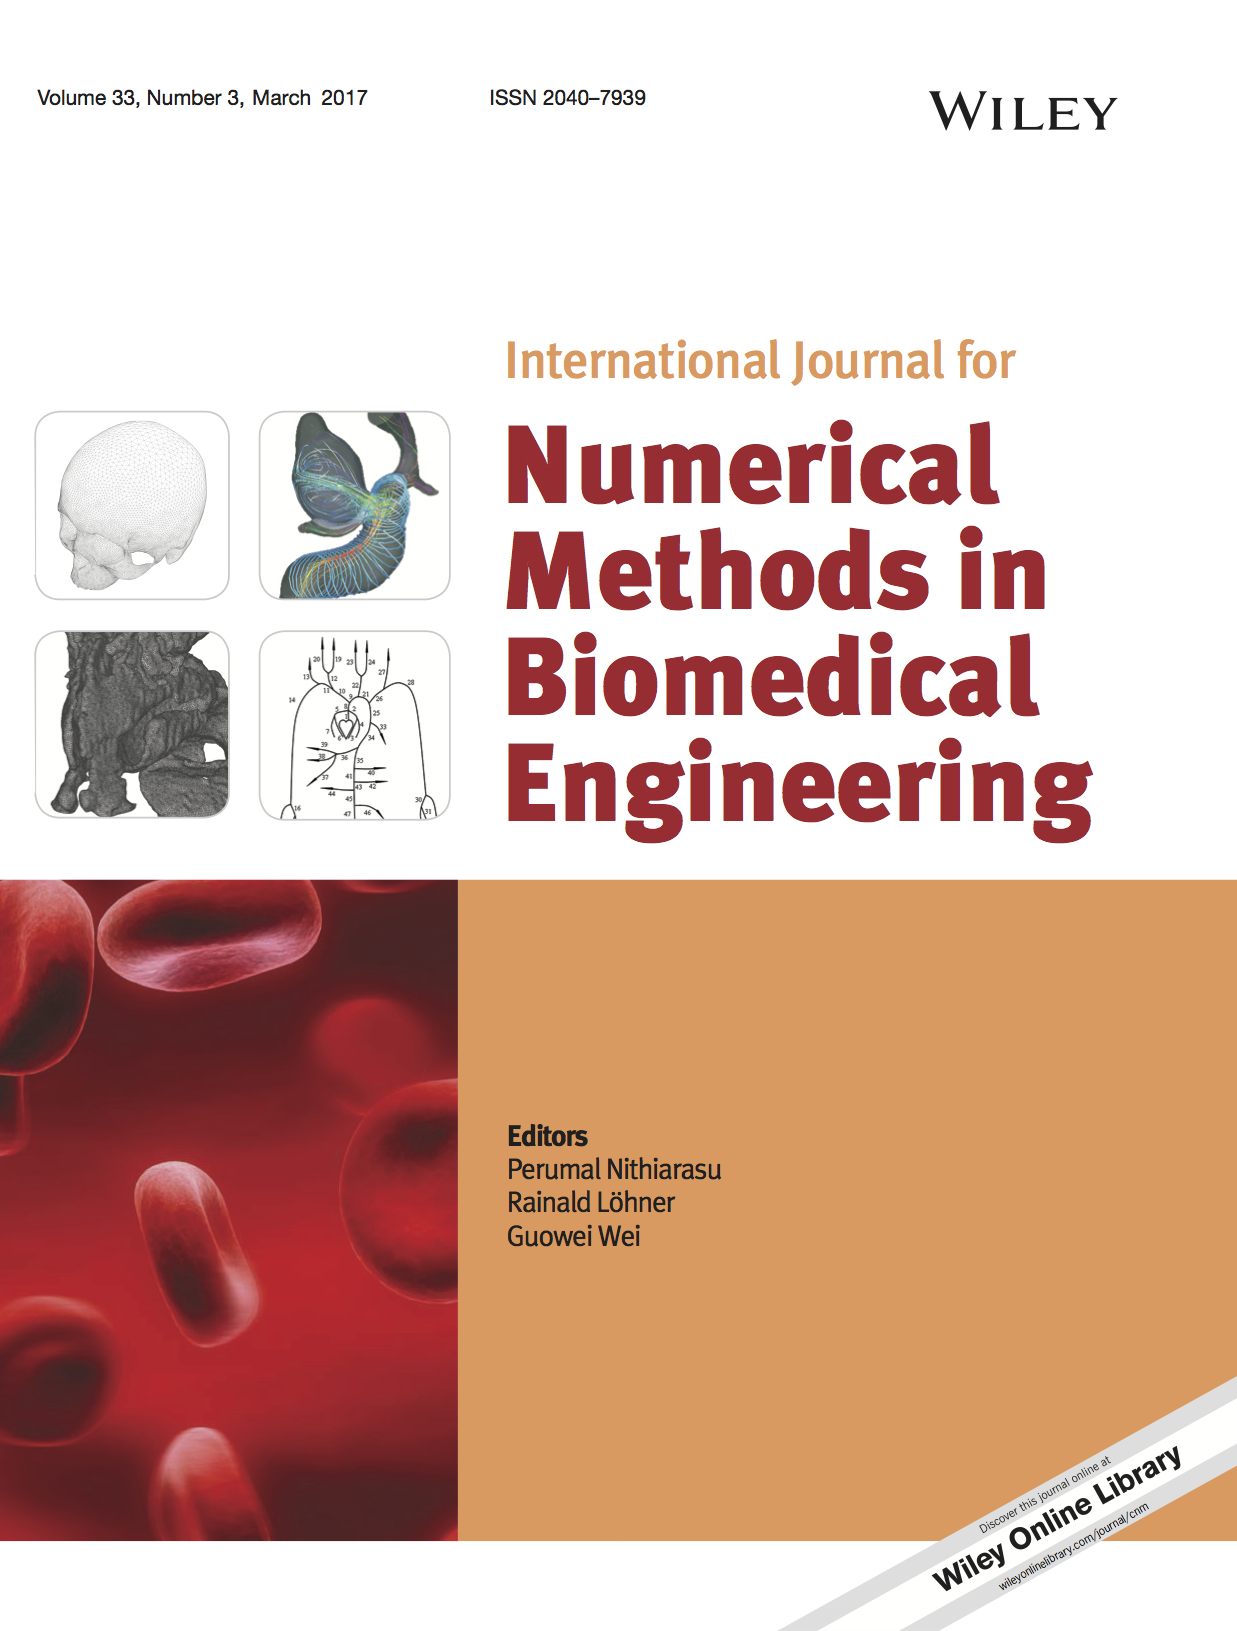 template for submissions to international journal for numerical